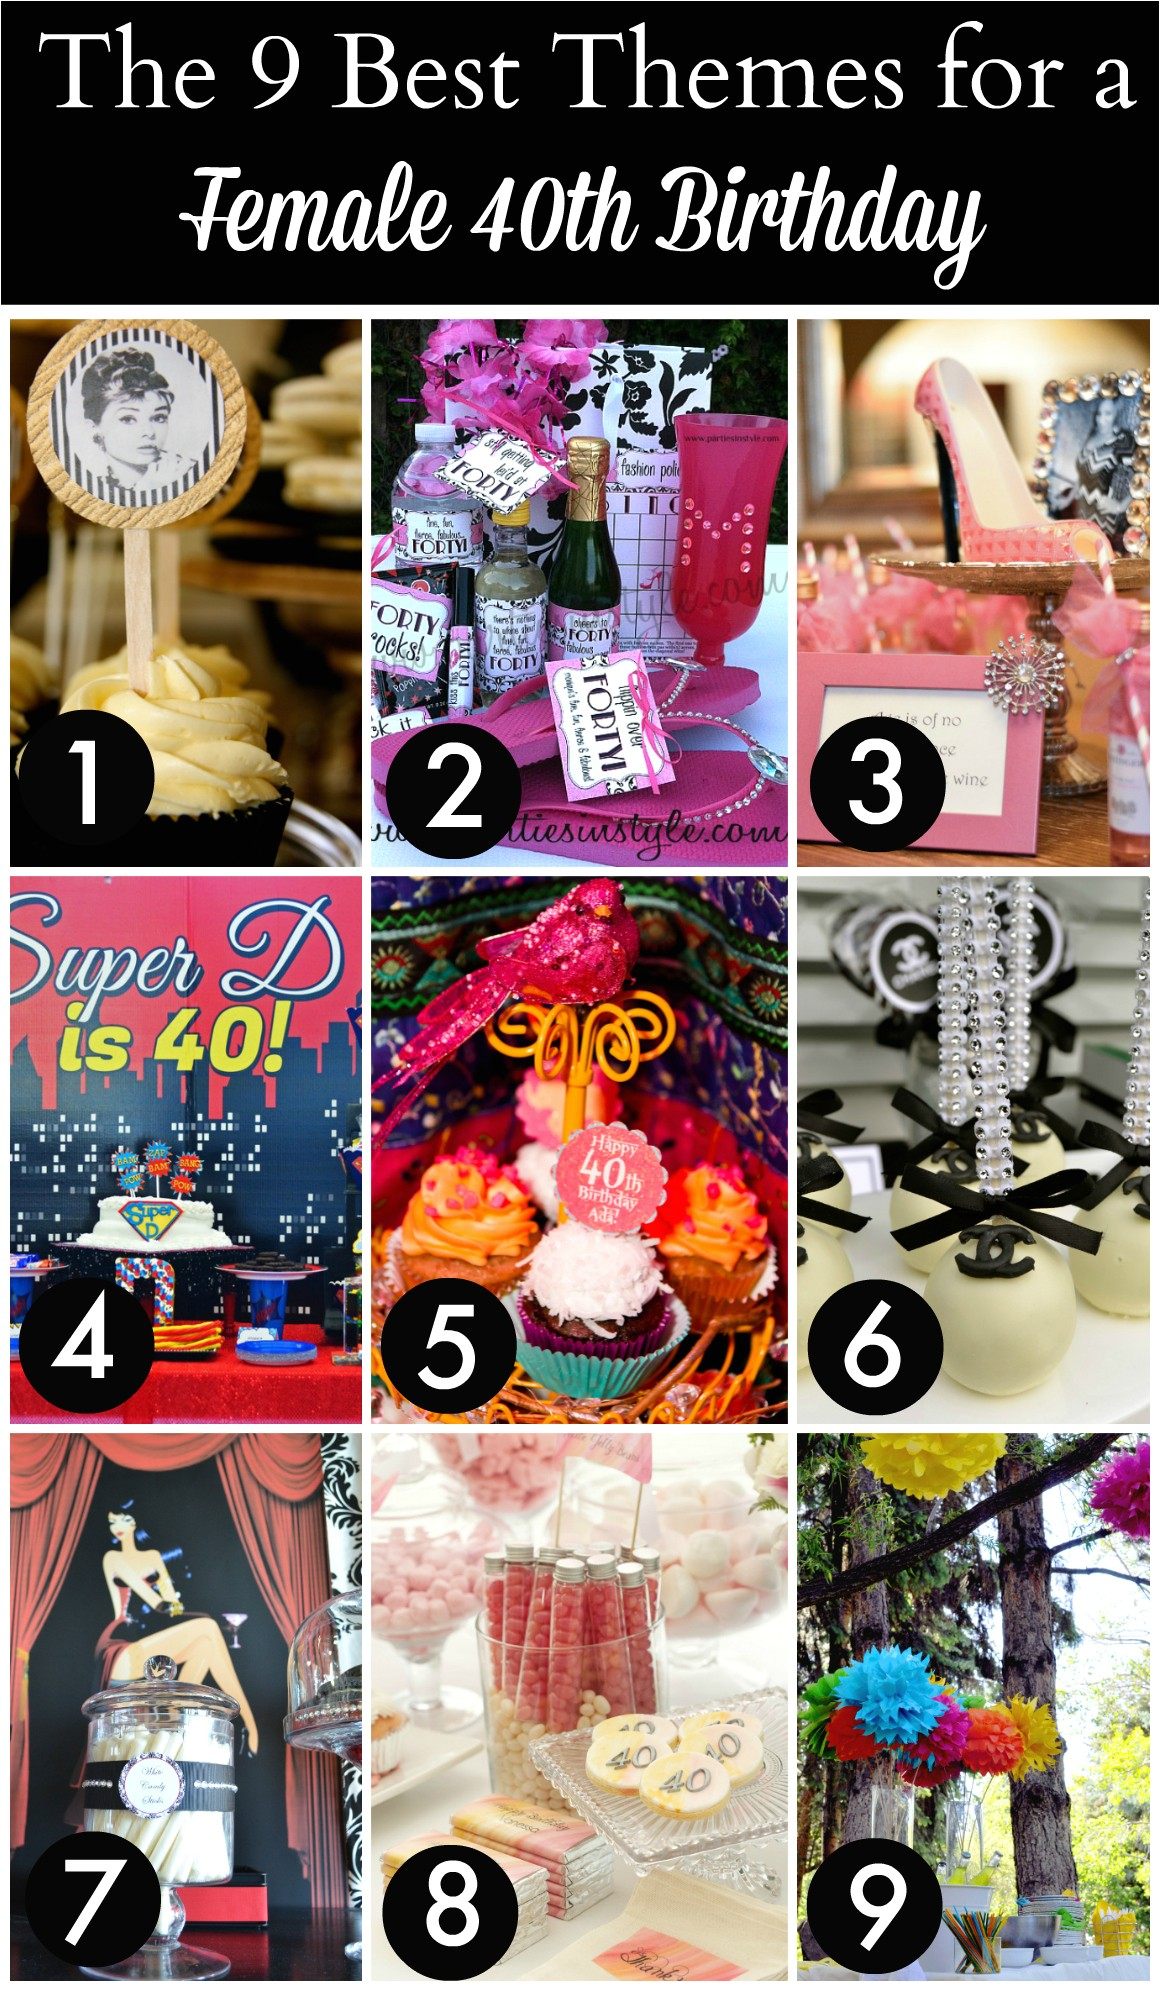 40th birthday party themes for women